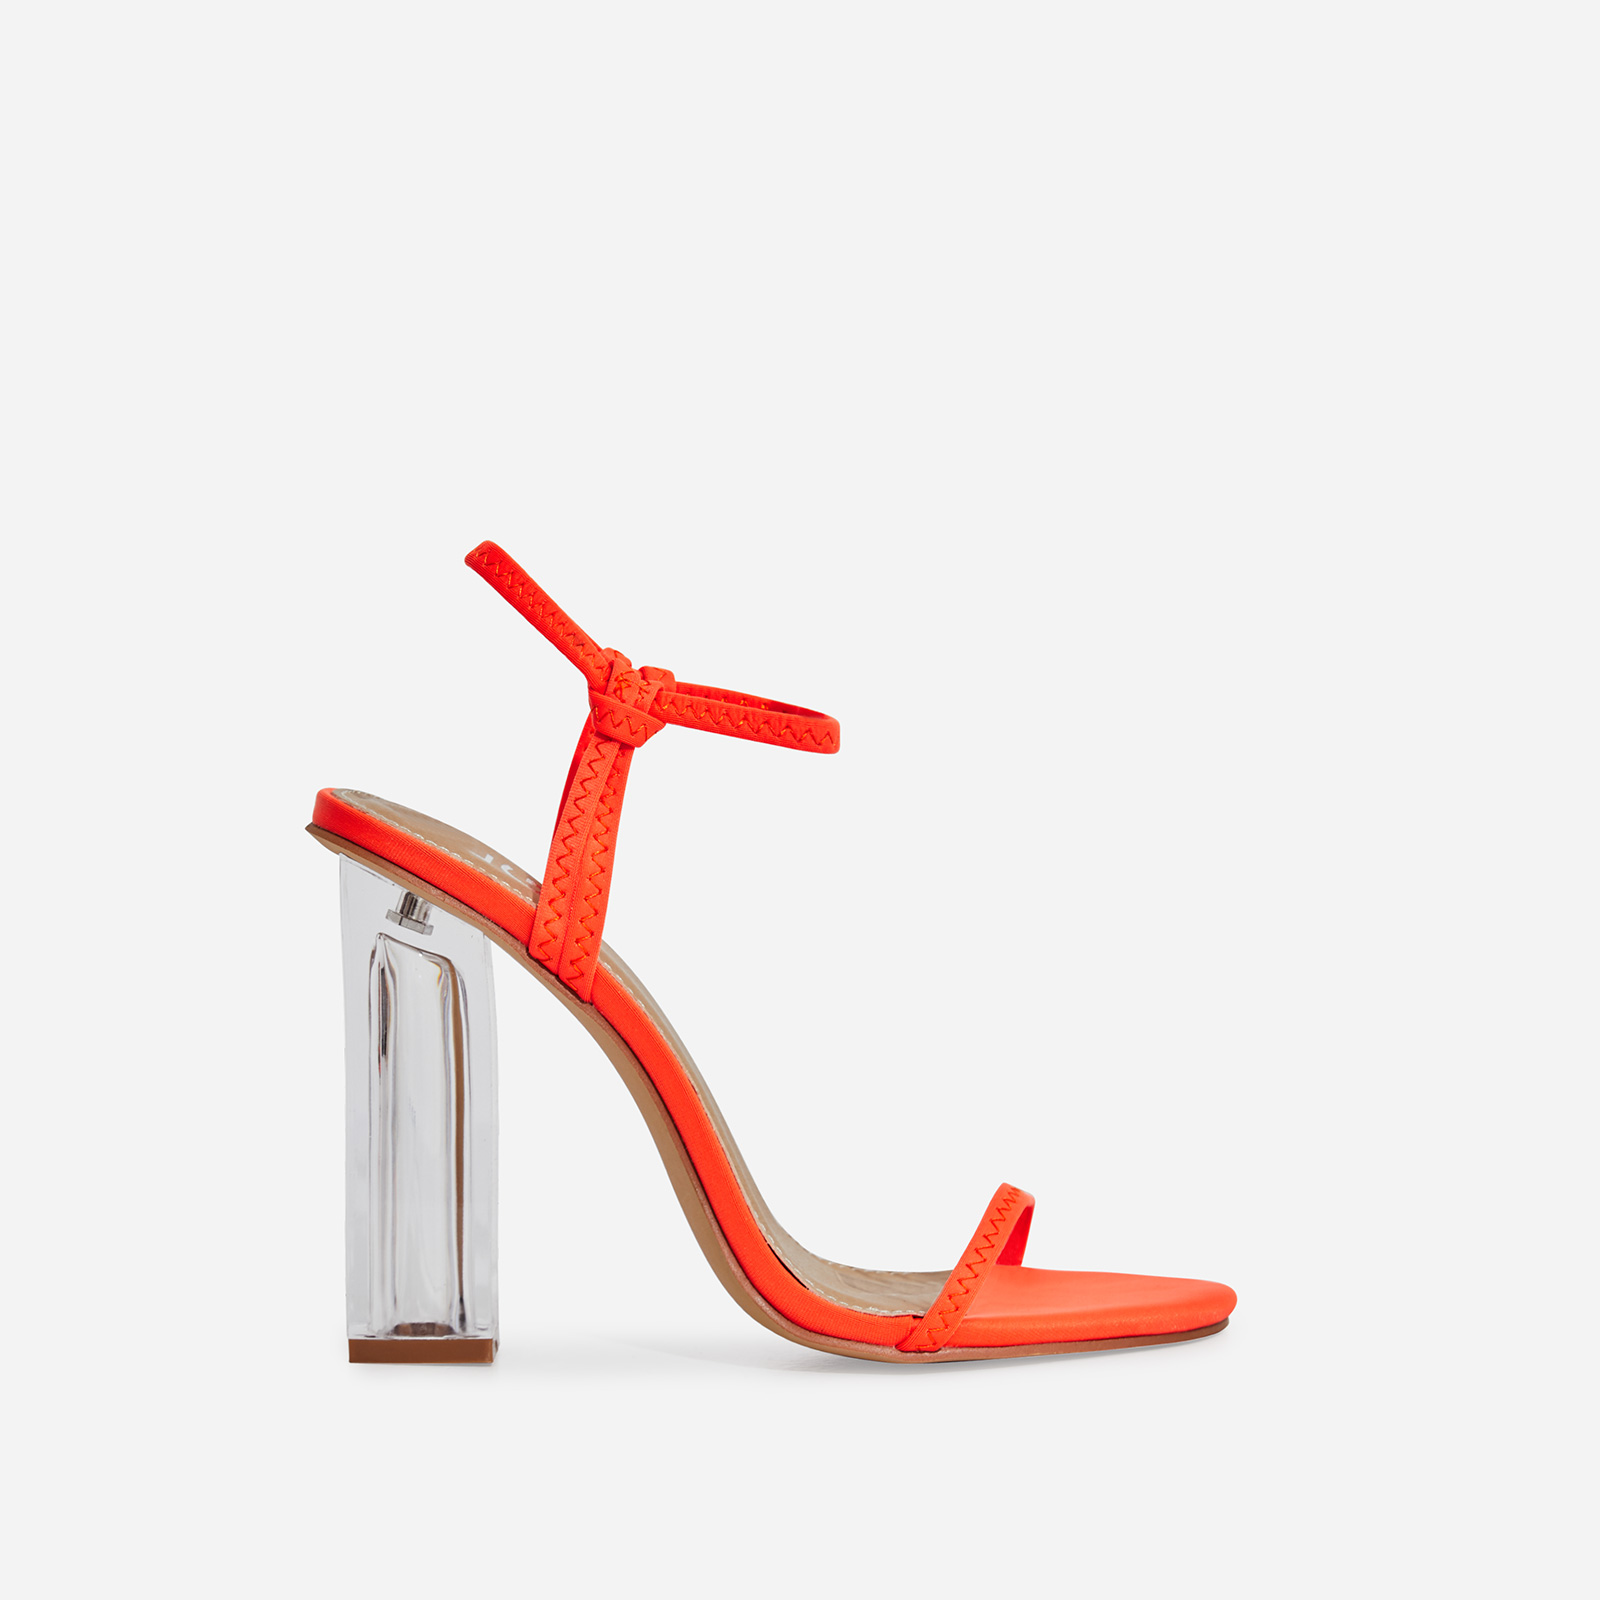 Lemon Barely There Perspex Block Heel In Neon Orange Lycra